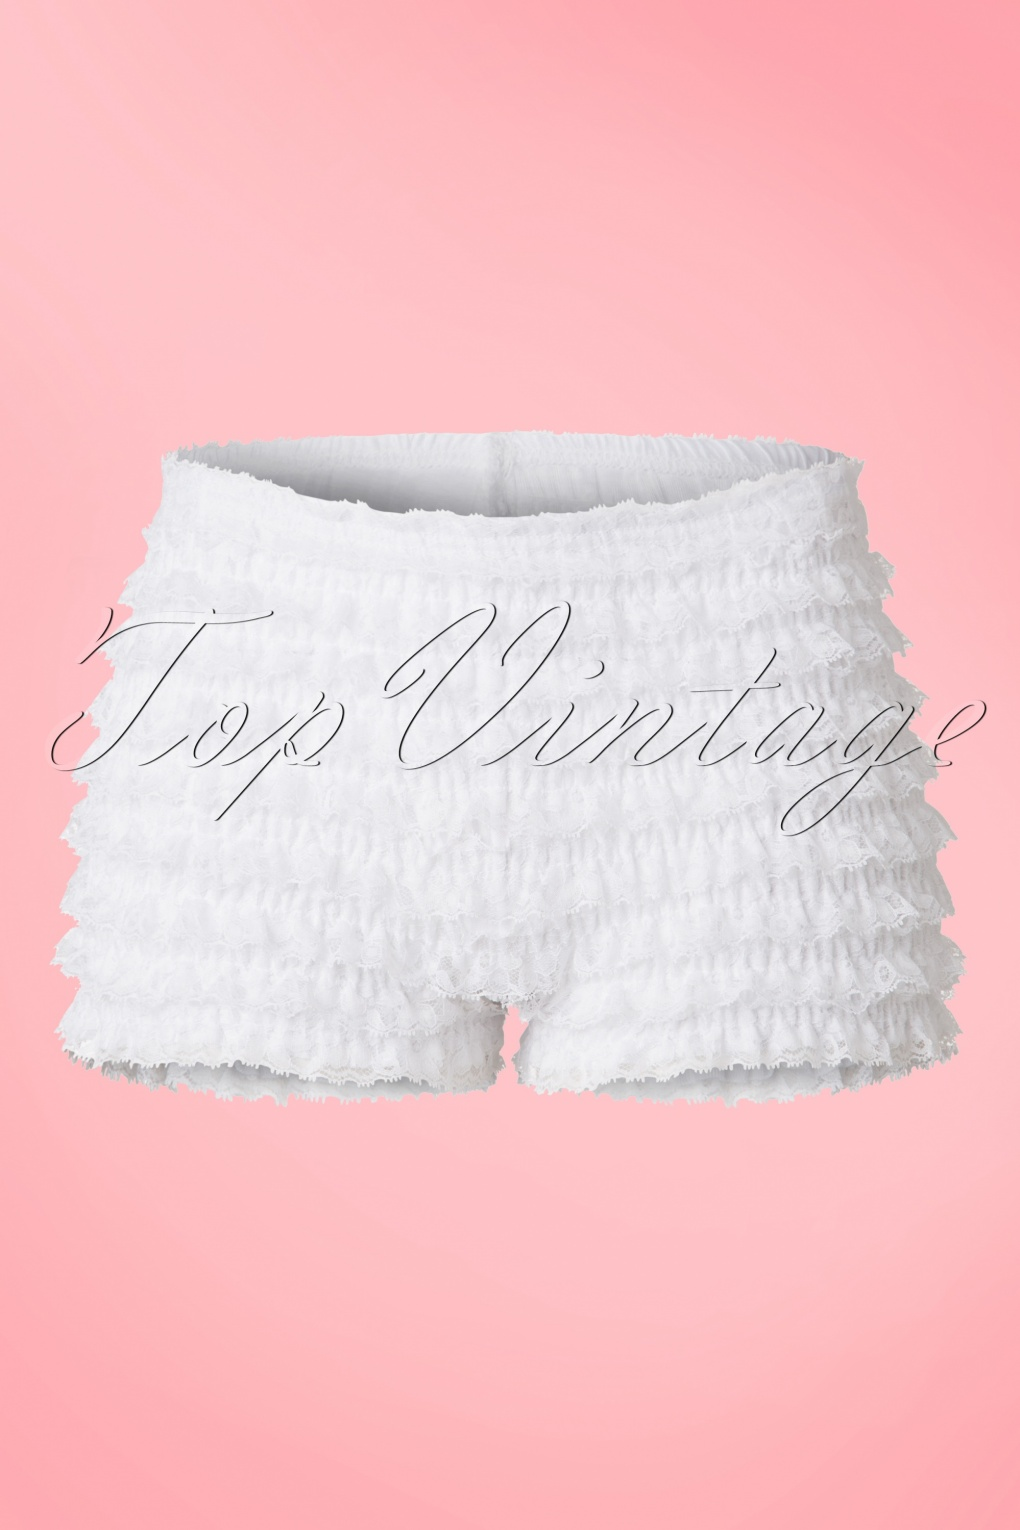 New 1950s Vintage Lingerie & Sleepwear, Pinup Styles 50s Pettypants in White £17.61 AT vintagedancer.com